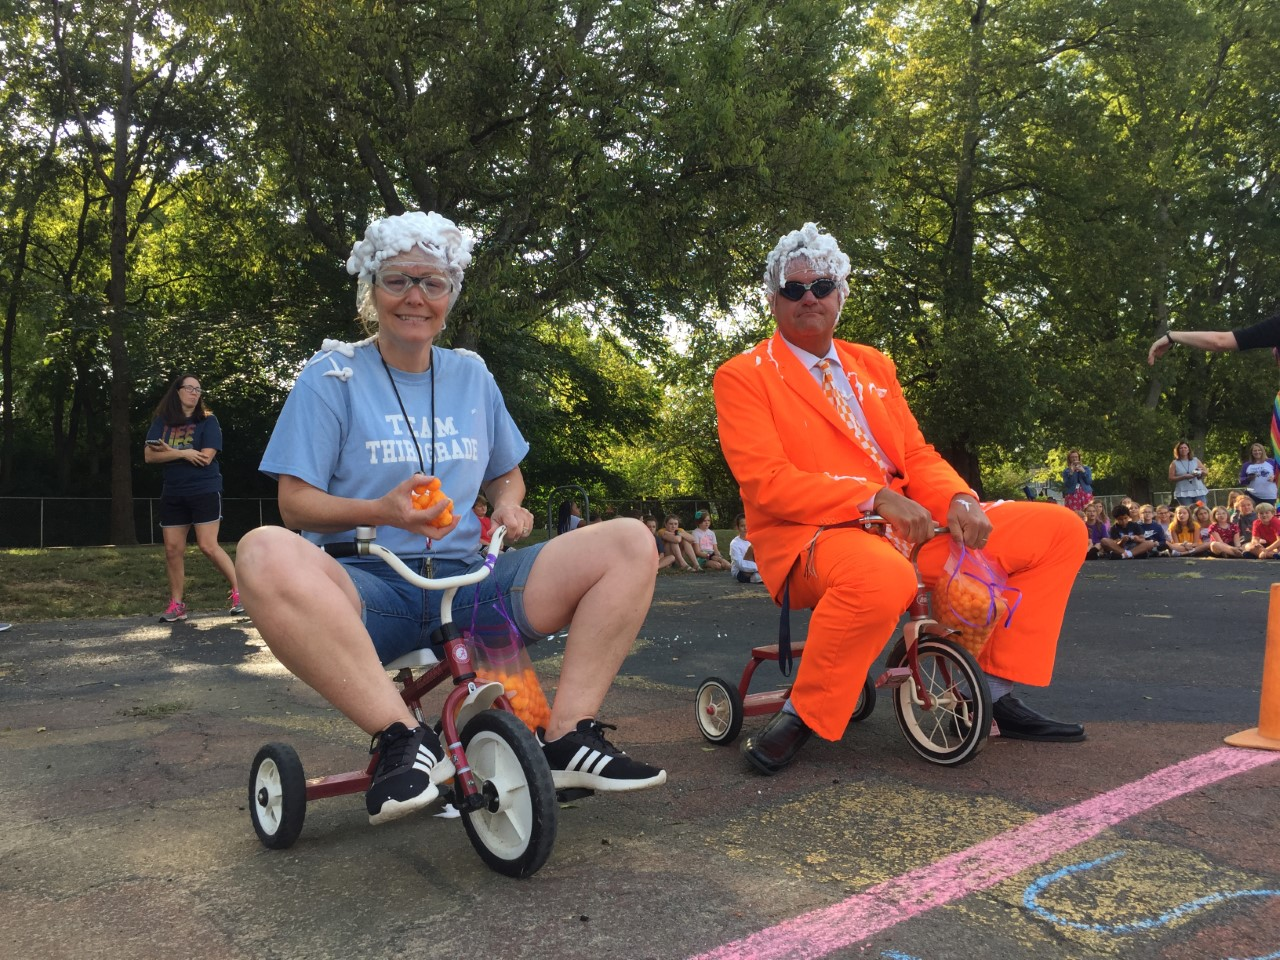 Mrs. Wood & Mr. Taylor on tricycles